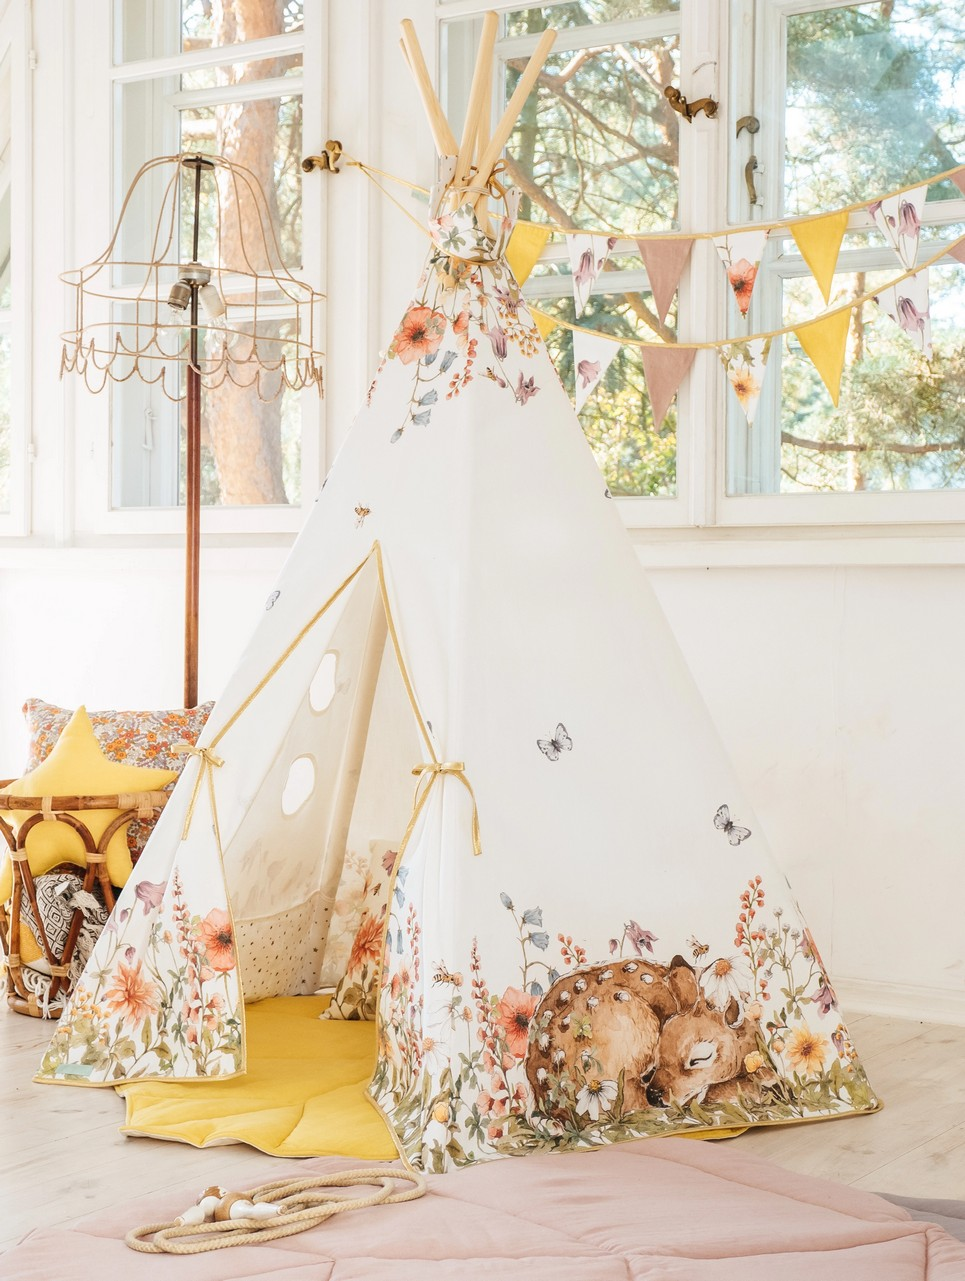 Wildflowers Children's Play Teepee